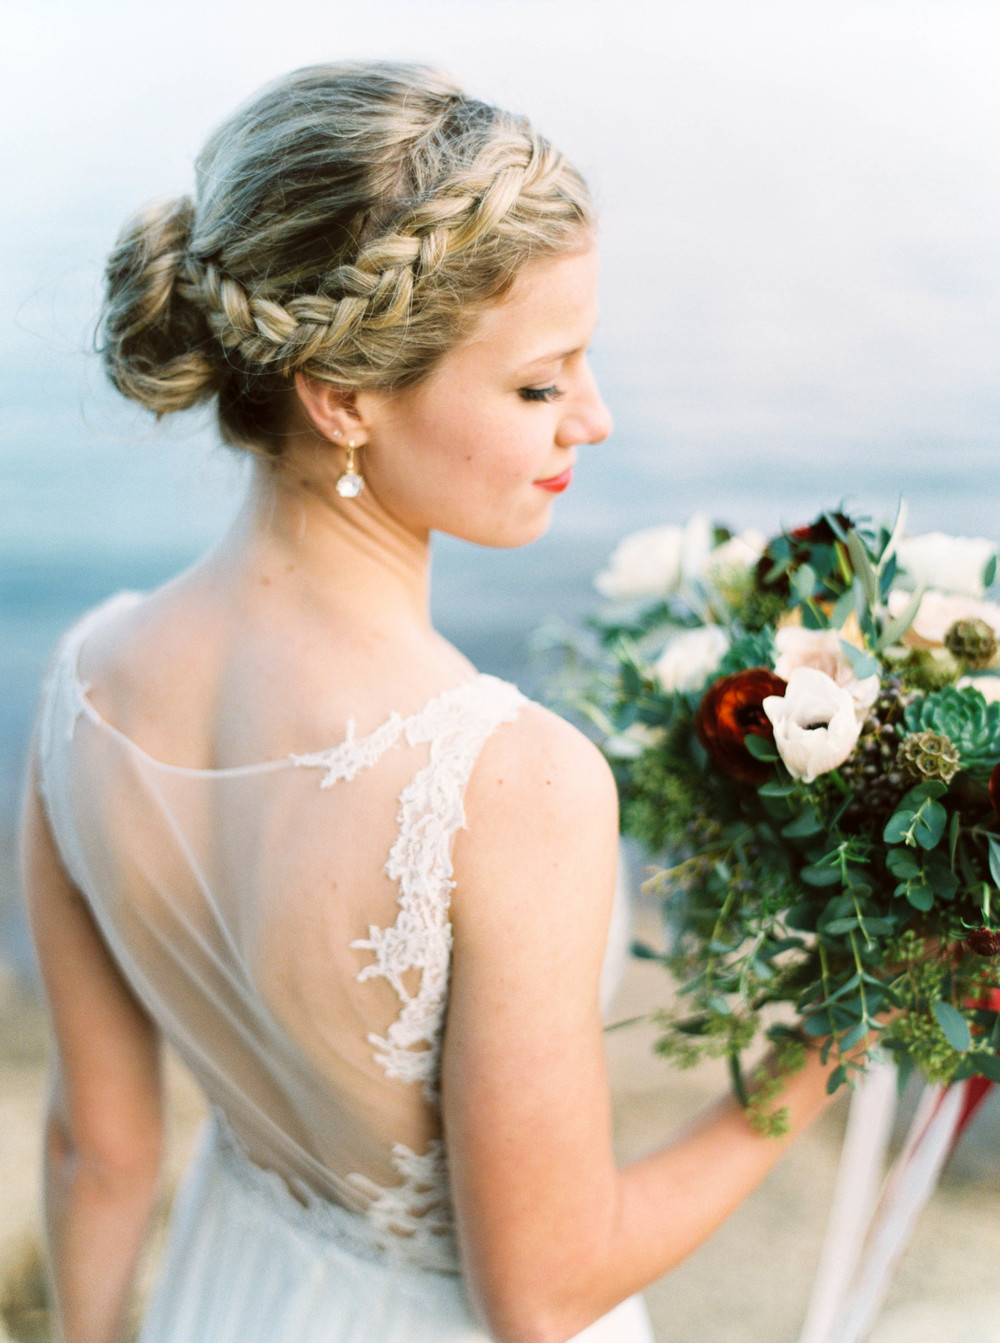 Sheer back wedding dress // Lush bridal bouquet